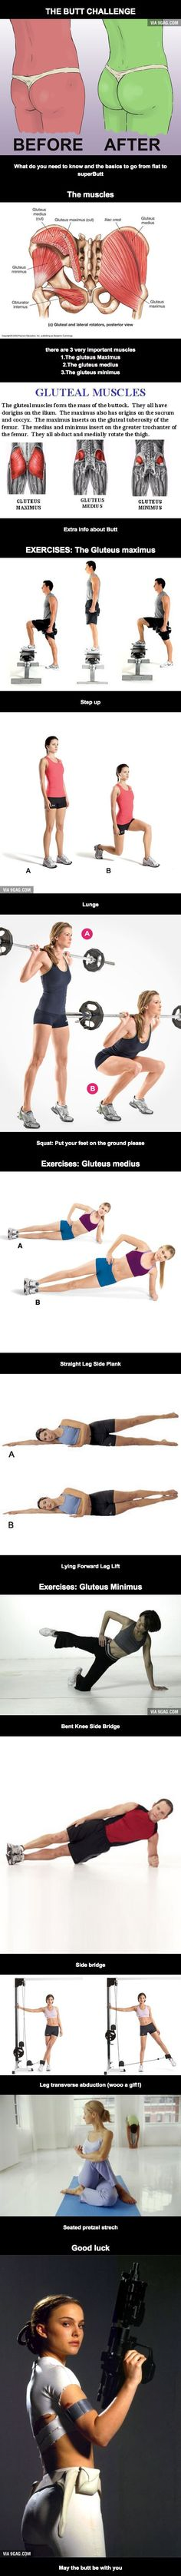 Great lower body workout